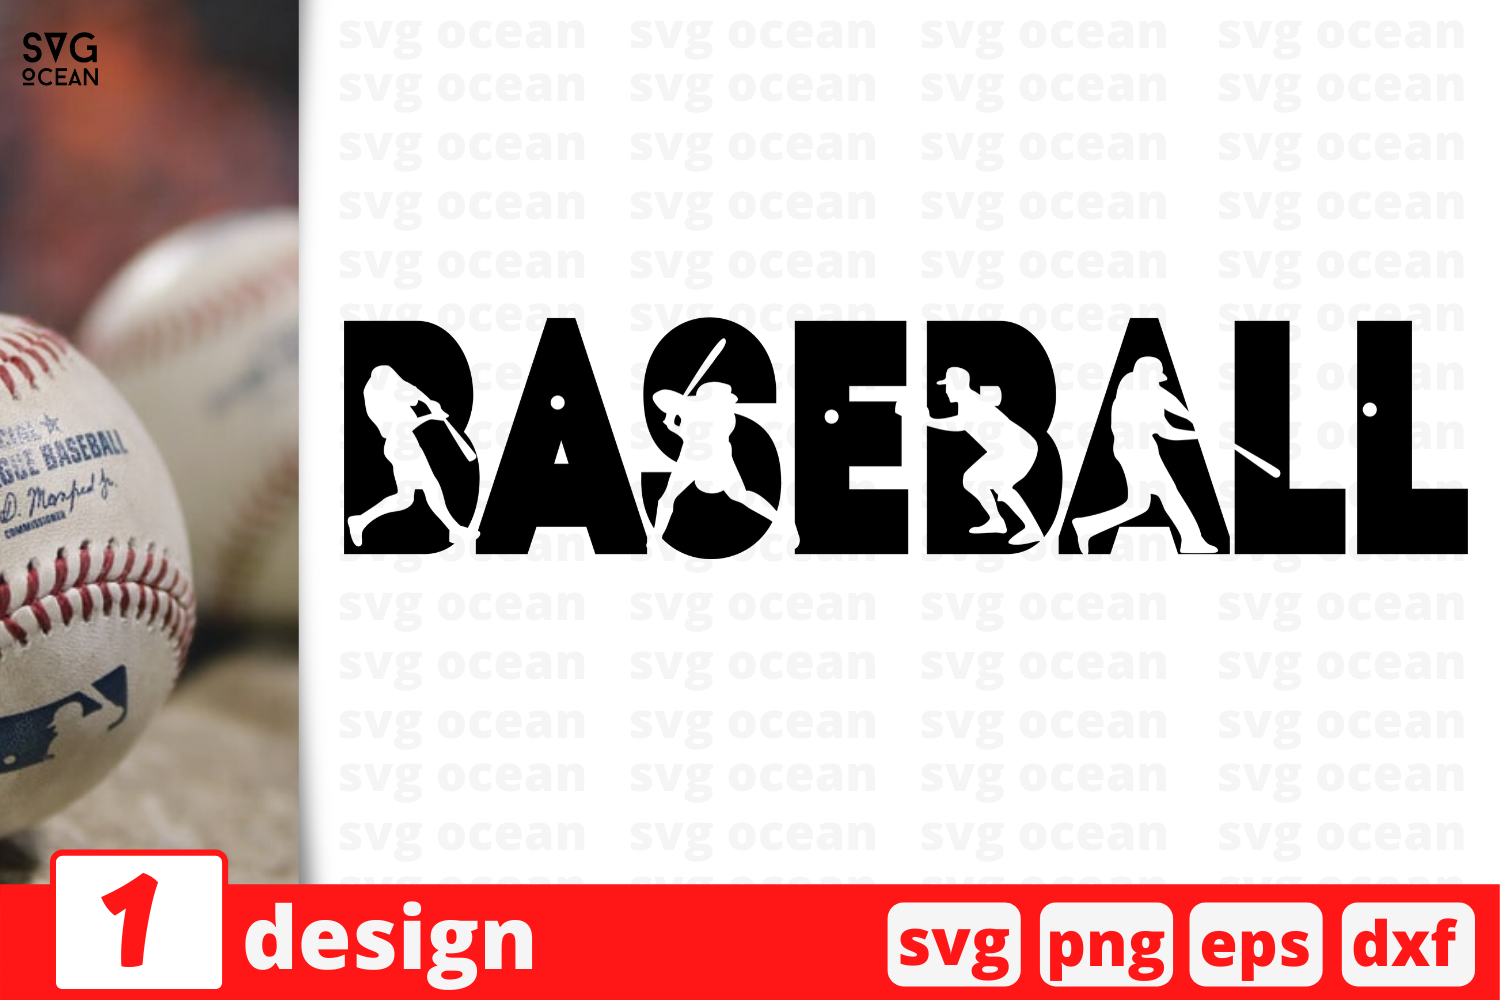 Download Free Baseball Graphic By Svgocean Creative Fabrica for Cricut Explore, Silhouette and other cutting machines.